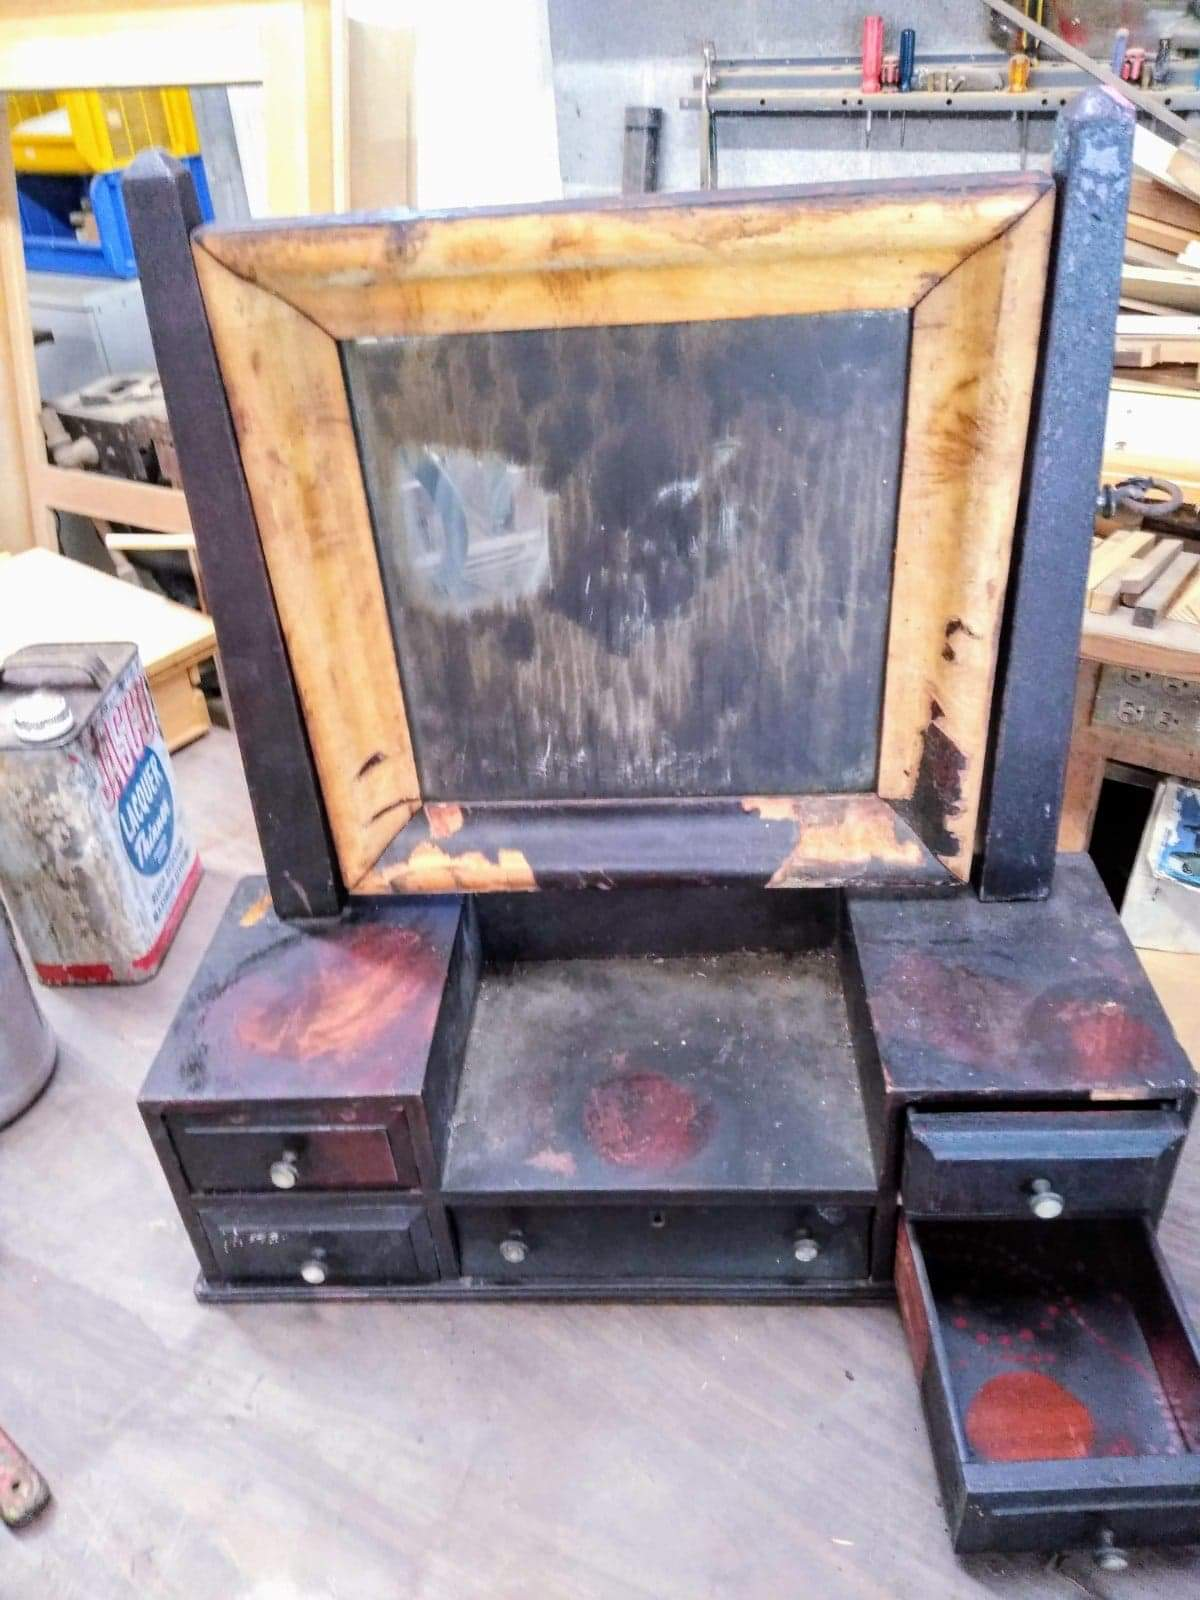 Dave S Antique Restoration And Furniture Repair Franklin Tn 37064 Yp